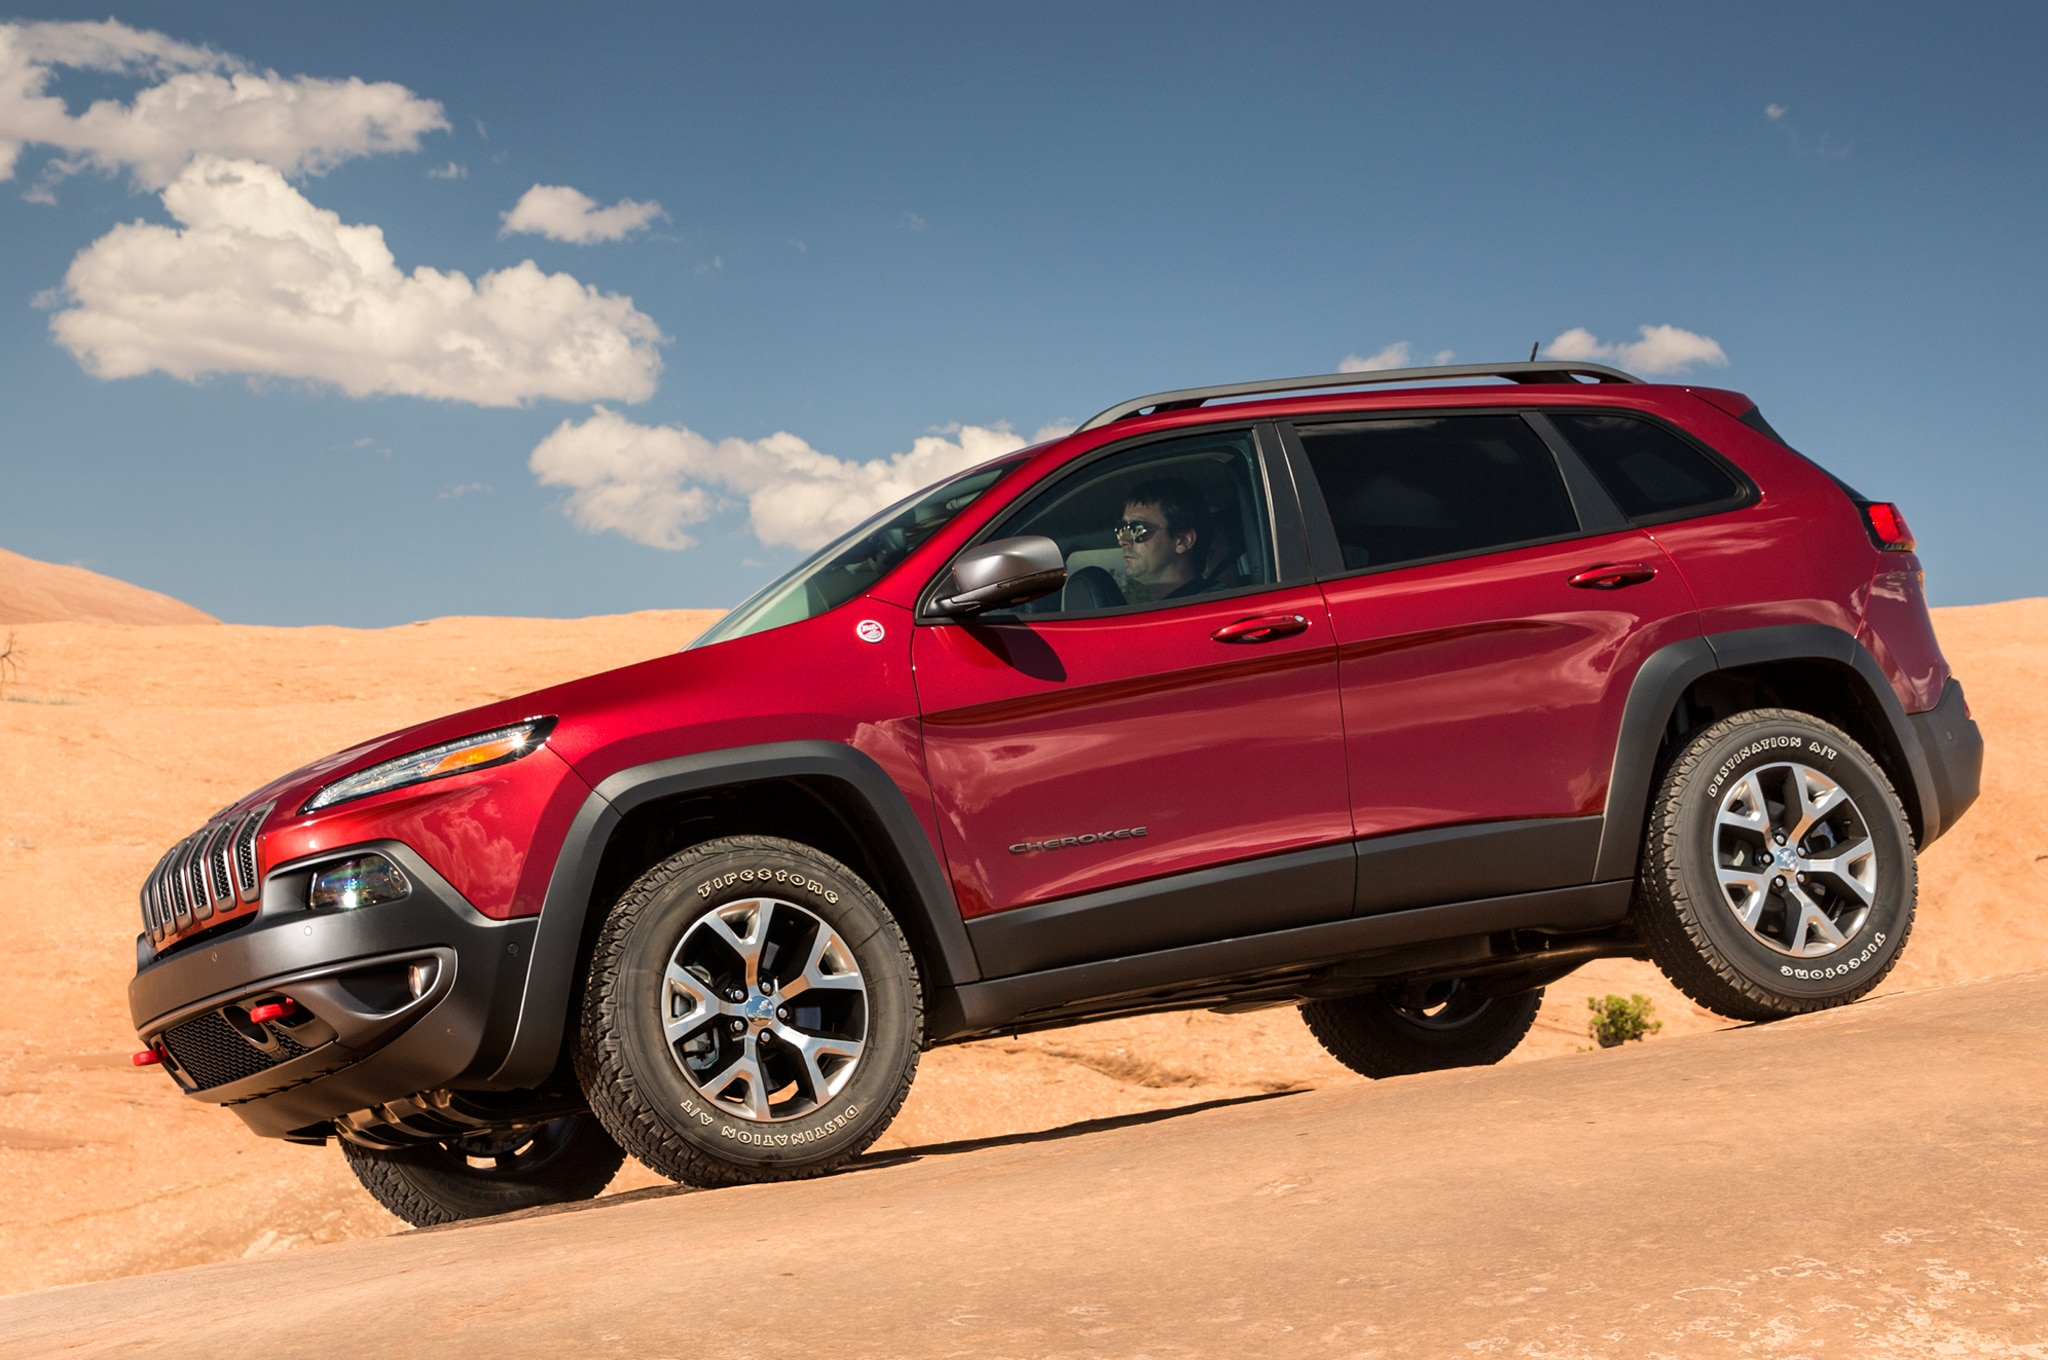 2014 Jeep Cherokee TrailHawk drivers side front view